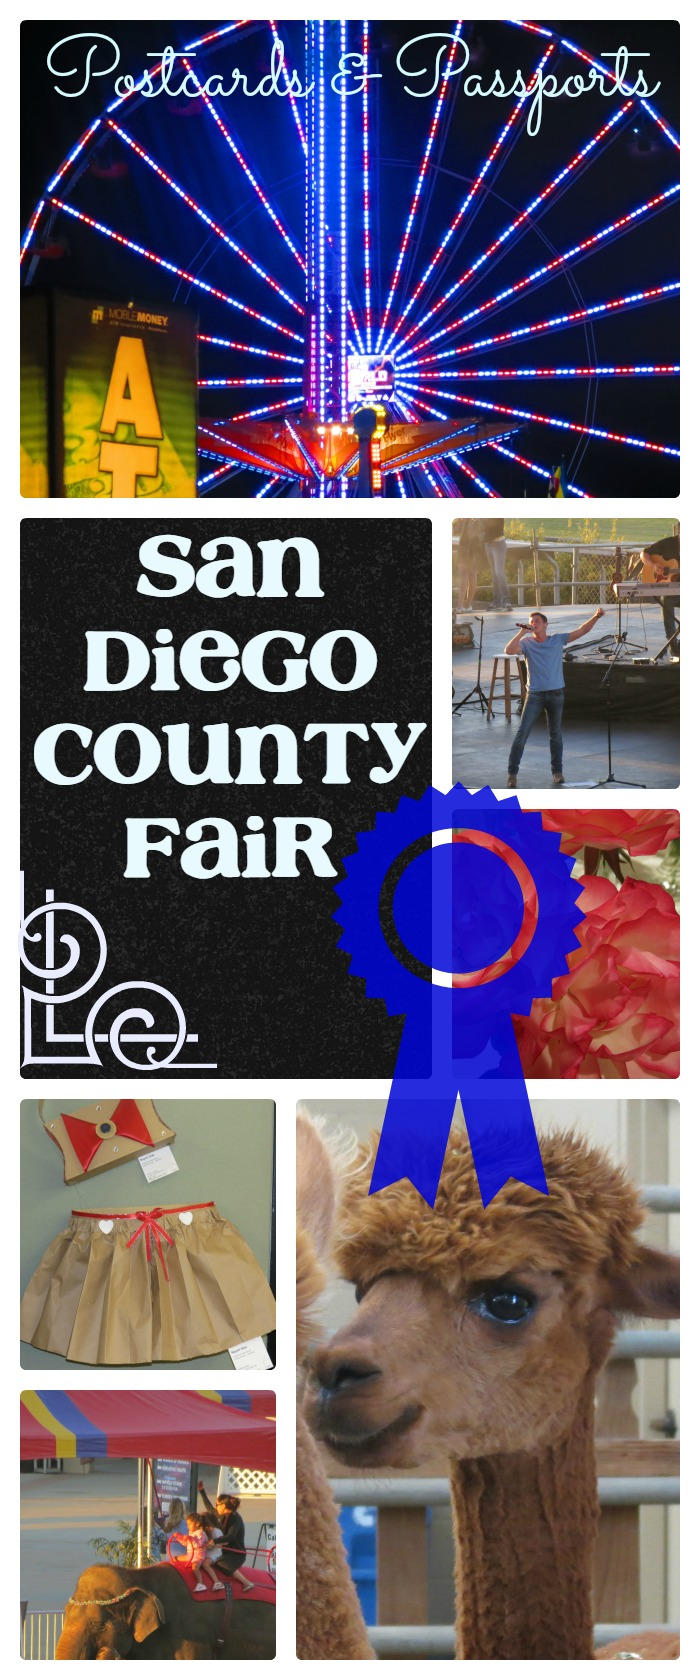 SD County Fair2